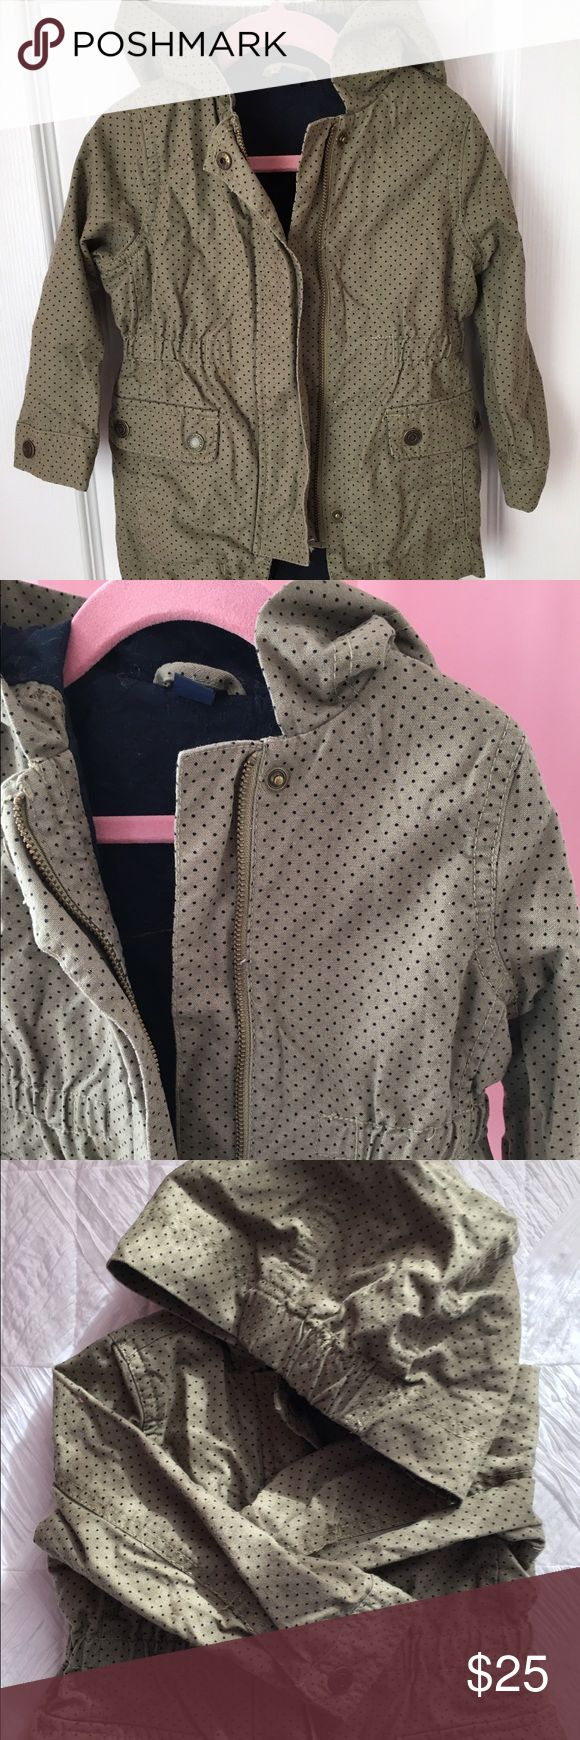 GAP Military Style Toddler Girl Jacket, Size 2T Gently used Toddler Girl Spring/Fall Jacket in Olive, military/parka style. Size 2T. In great condition! GAP Jackets & Coats Raincoats